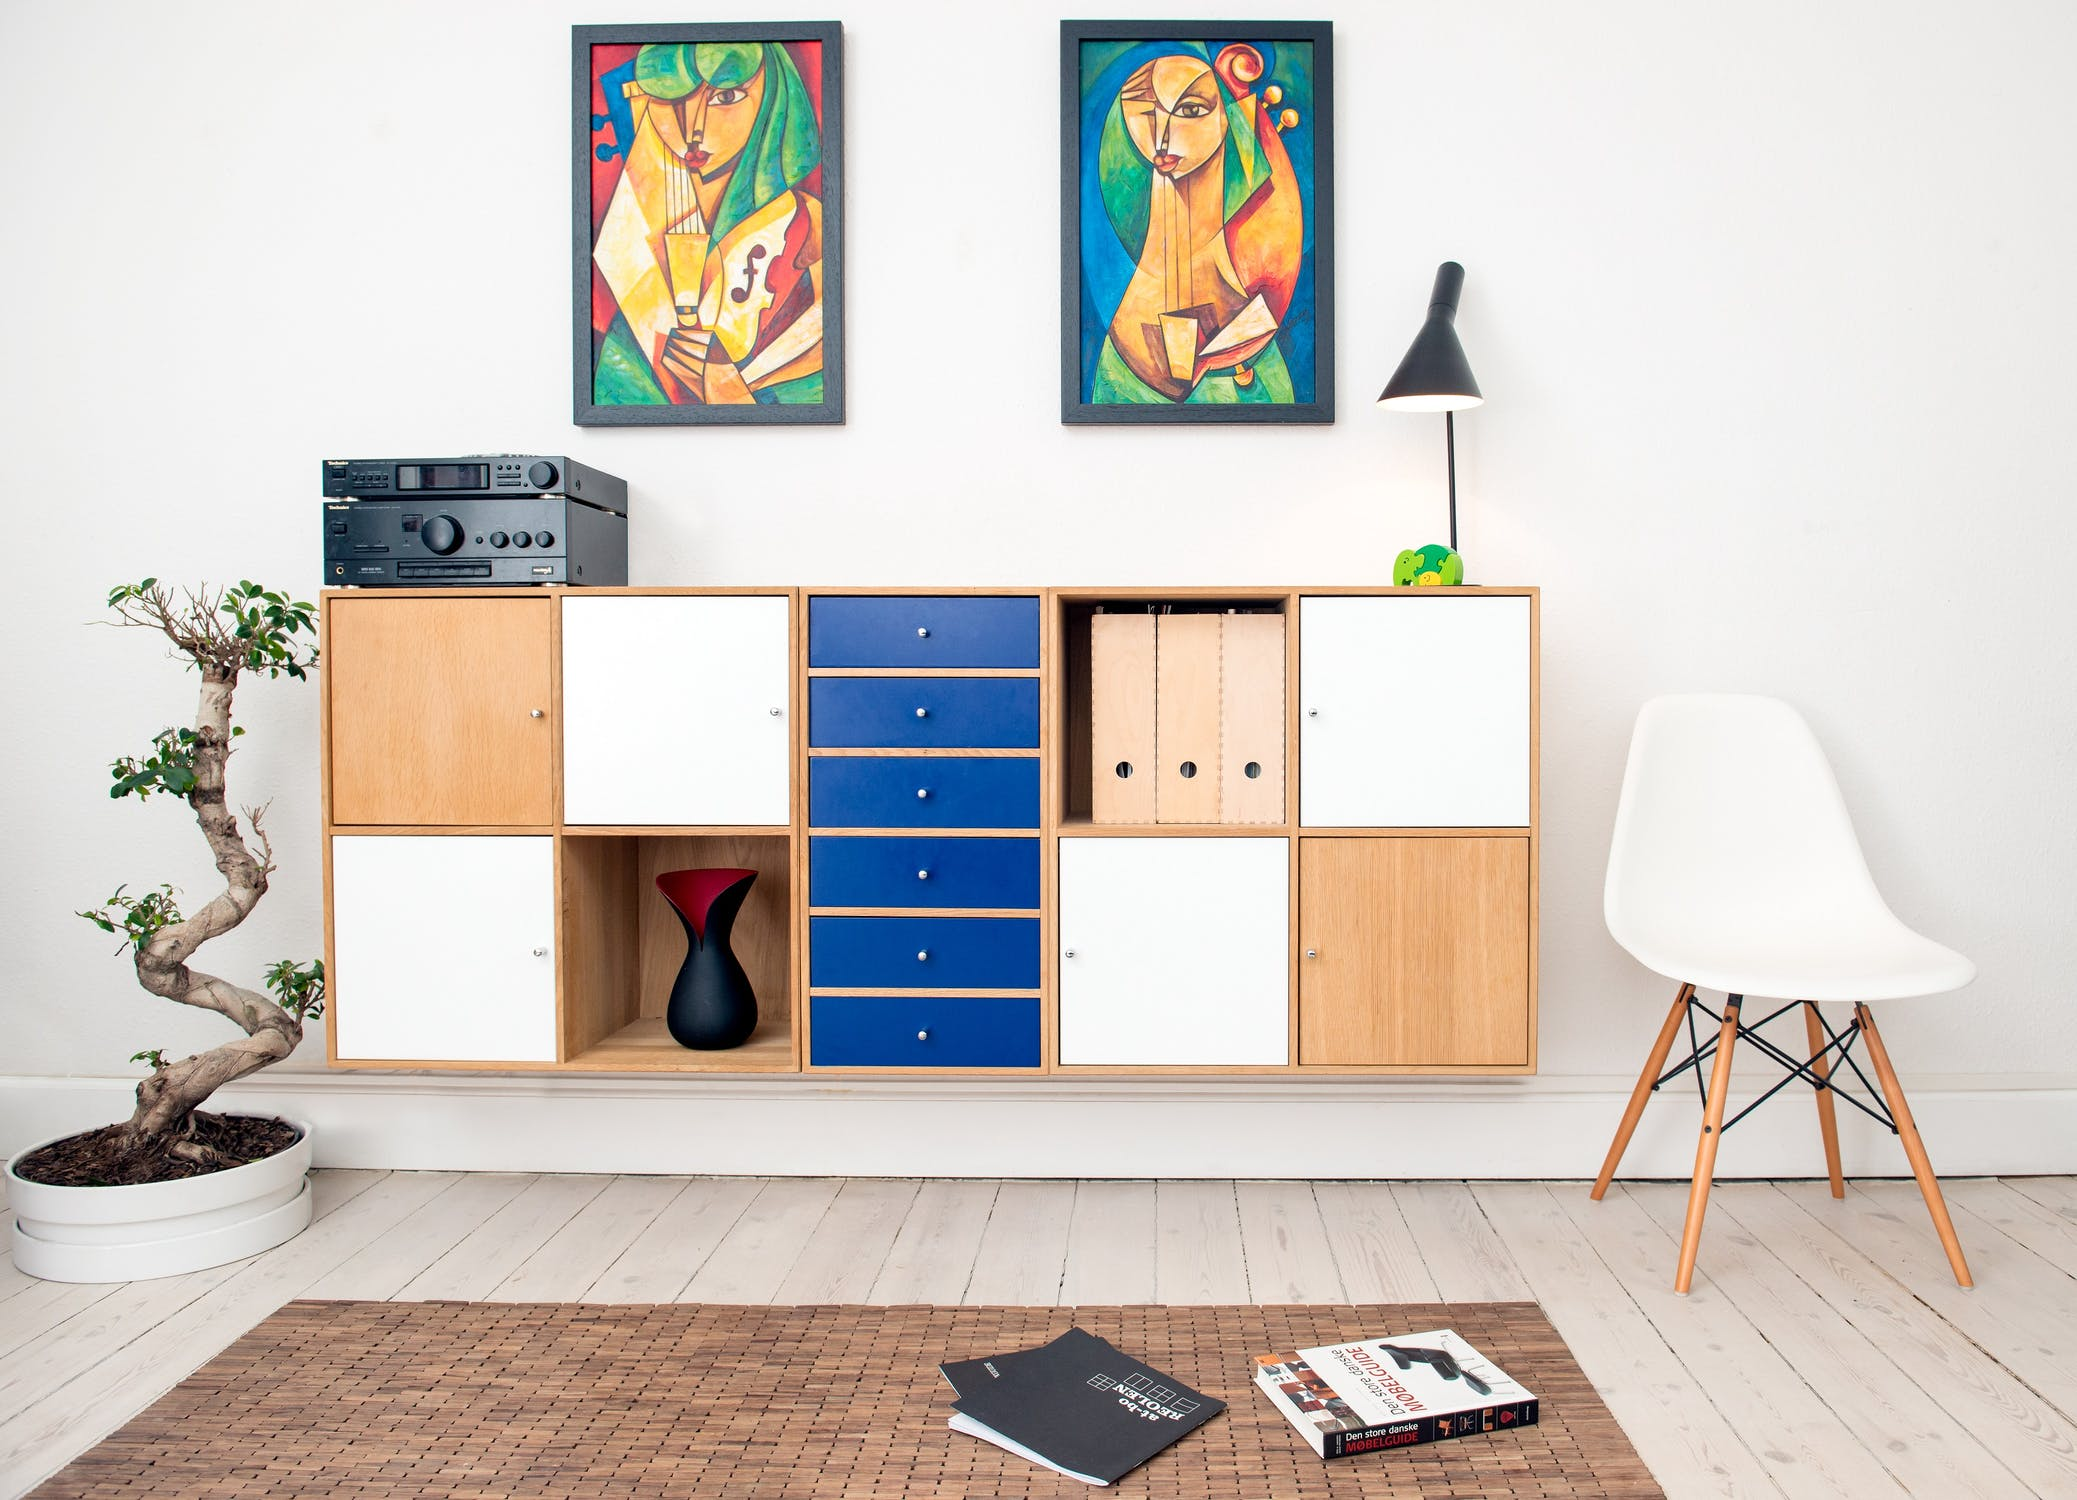 Affordable Furniture in a Luxury Condo? How to Make Them Look More Expensive